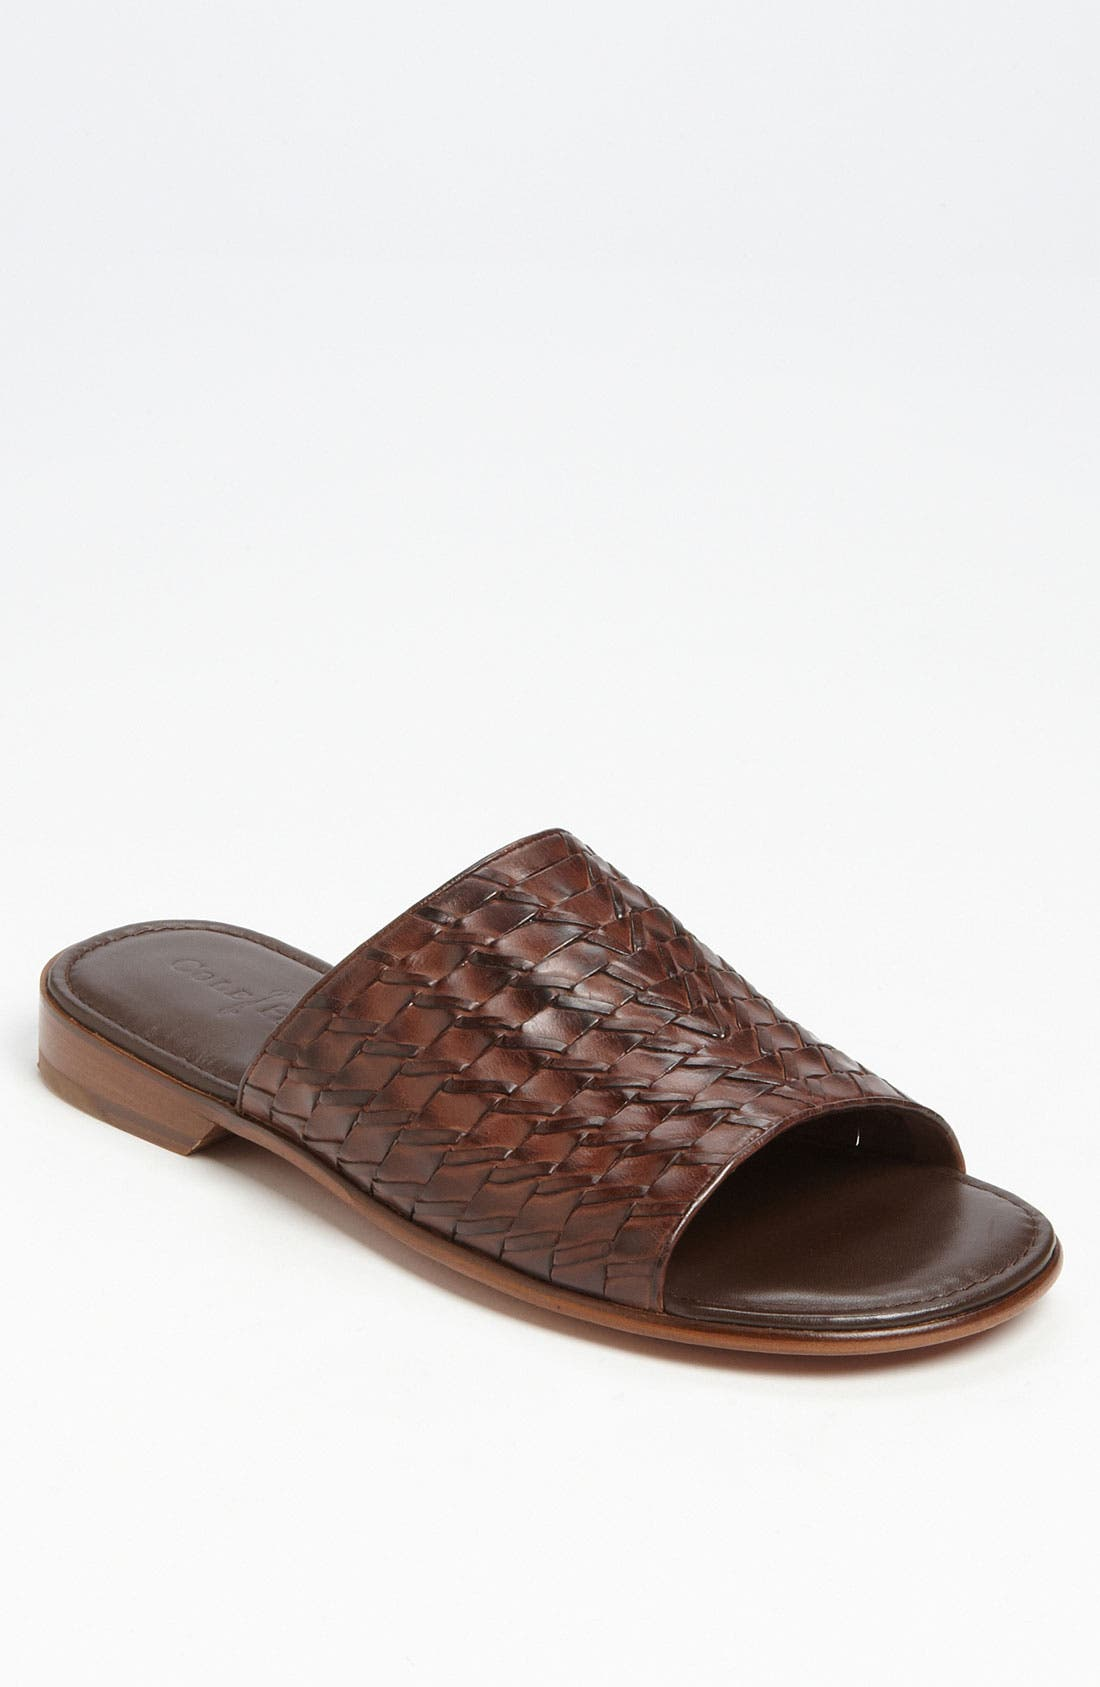 Alternate Image 1 Selected - Cole Haan 'Air Tremont' Sandal